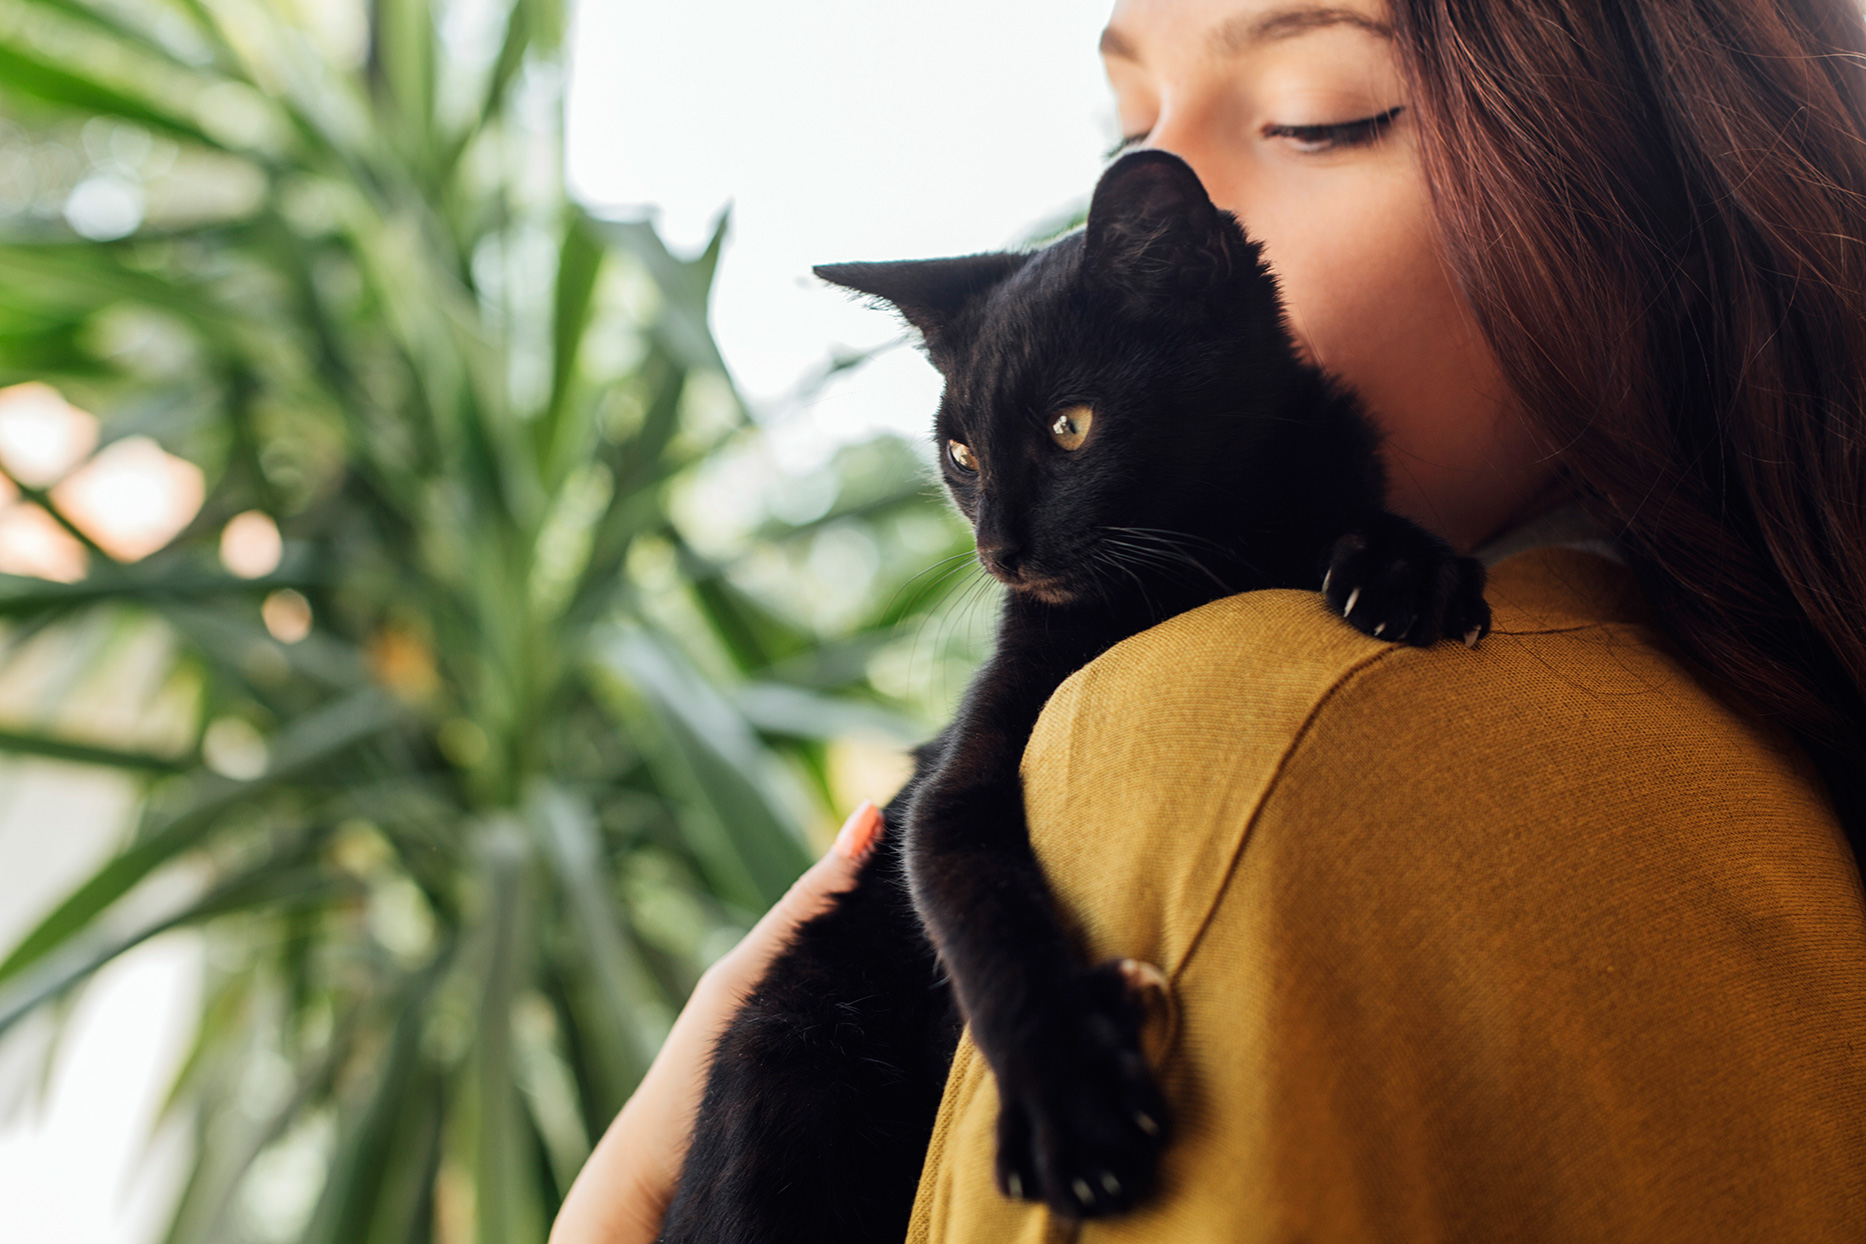 woman holding black cat